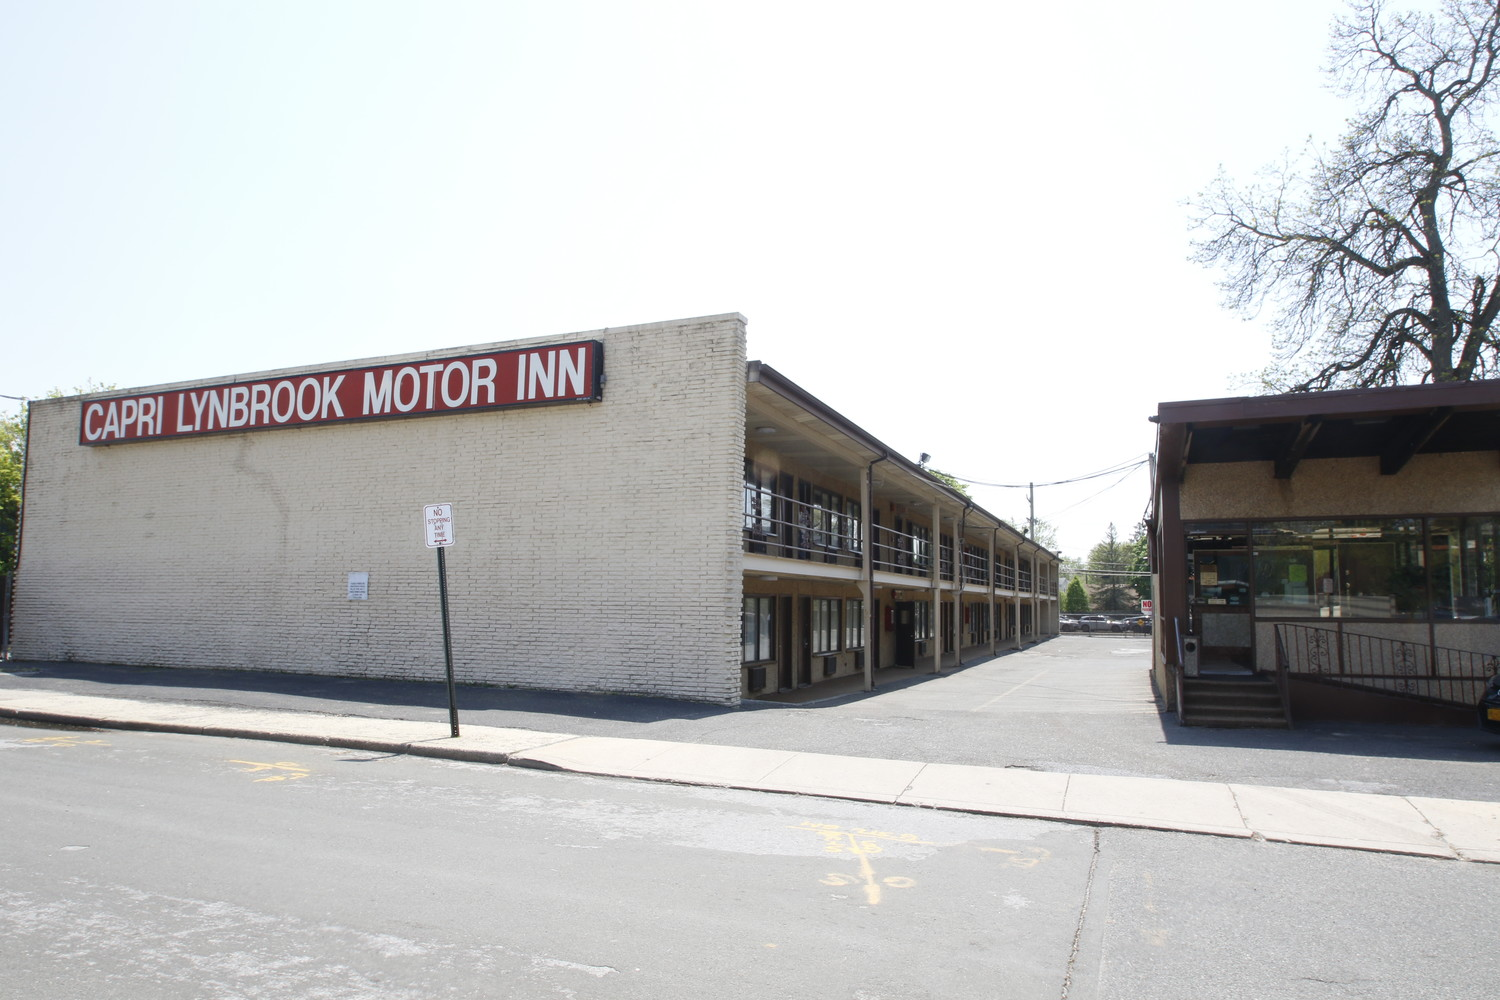 After a series of arrests and drug overdoses at the Capri Lynbrook Motor Inn, its owners had their room-rental license revoked by village officials, effective Dec. 21. They will have 30 days to appeal.